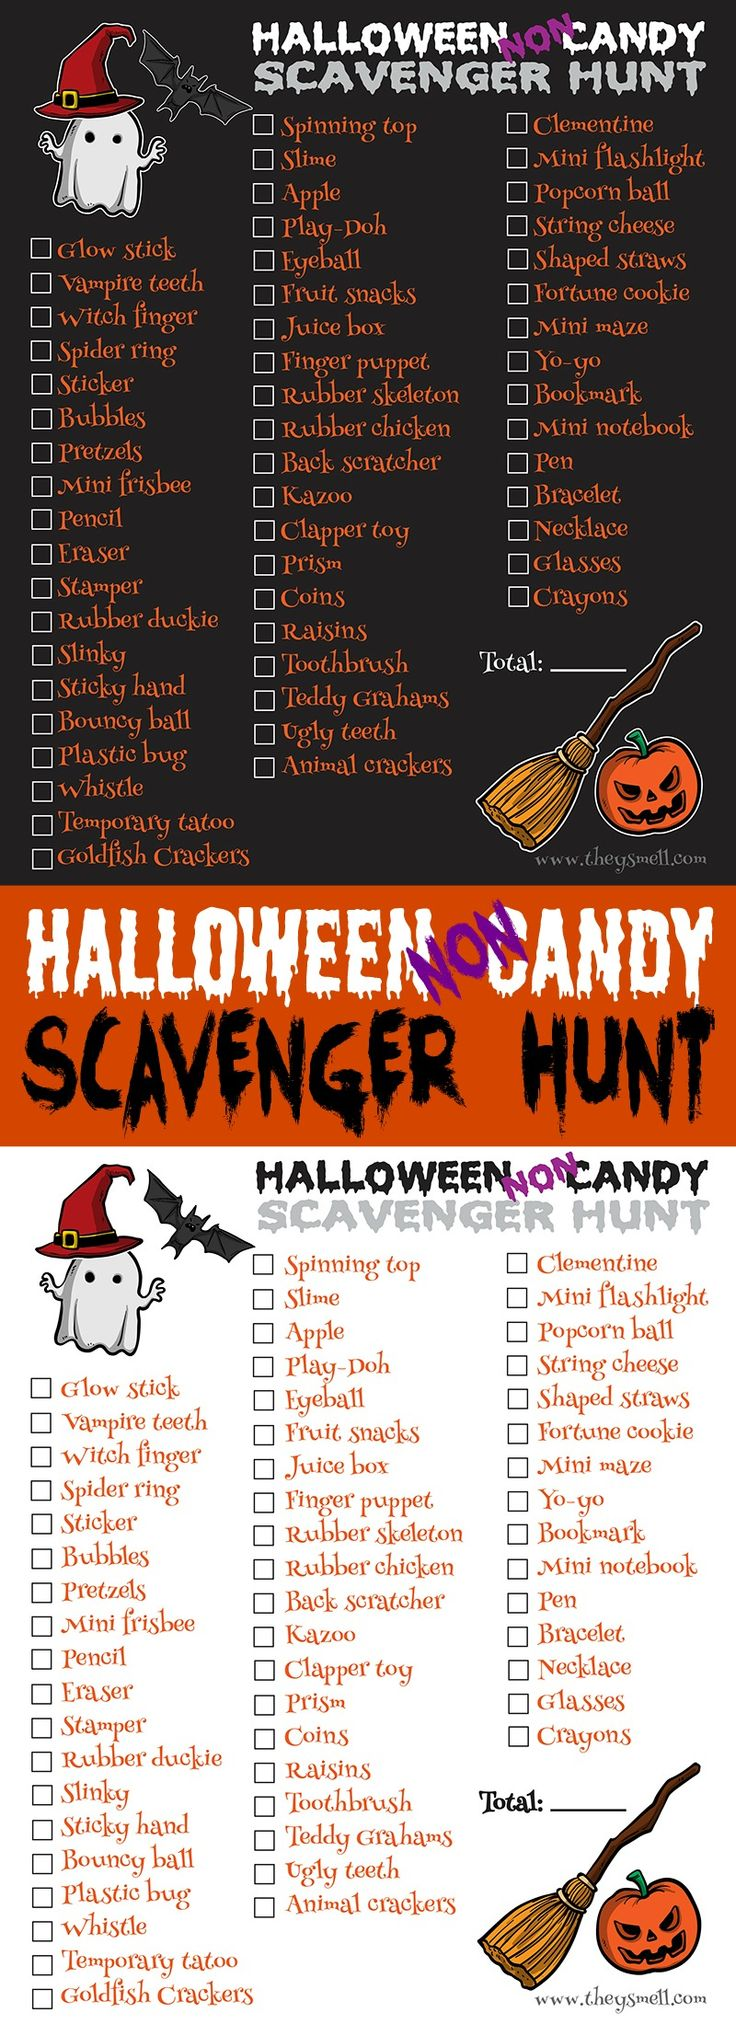 Halloween NonCandy Scavenger Hunt Printable Kid, Other